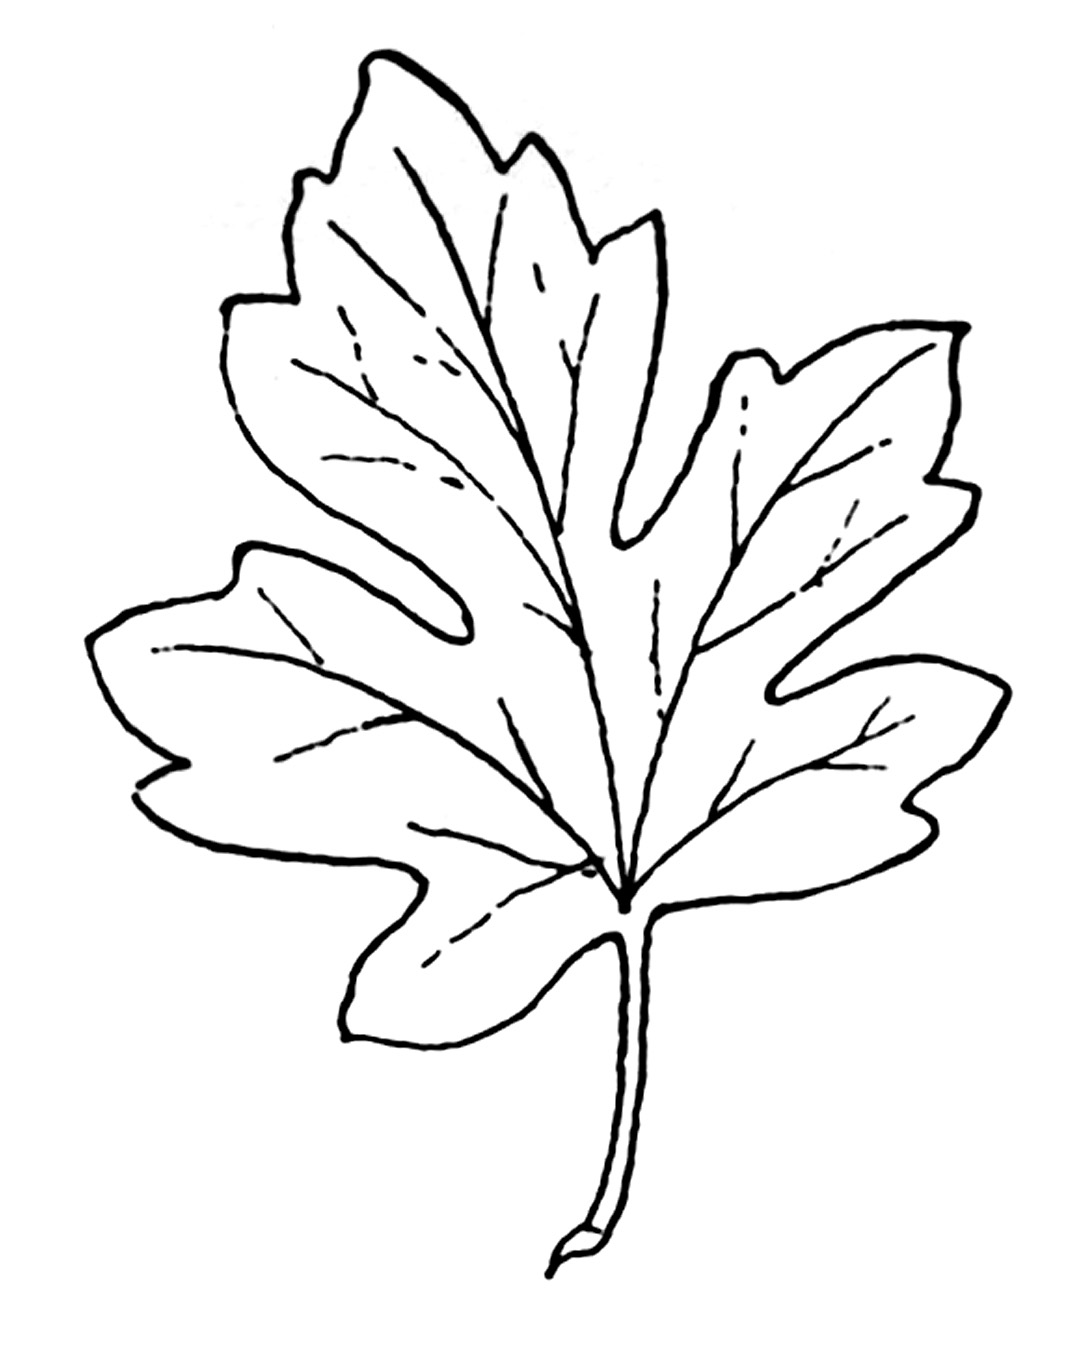 Free Black And White Autumn Leaves, Download Free Clip Art.